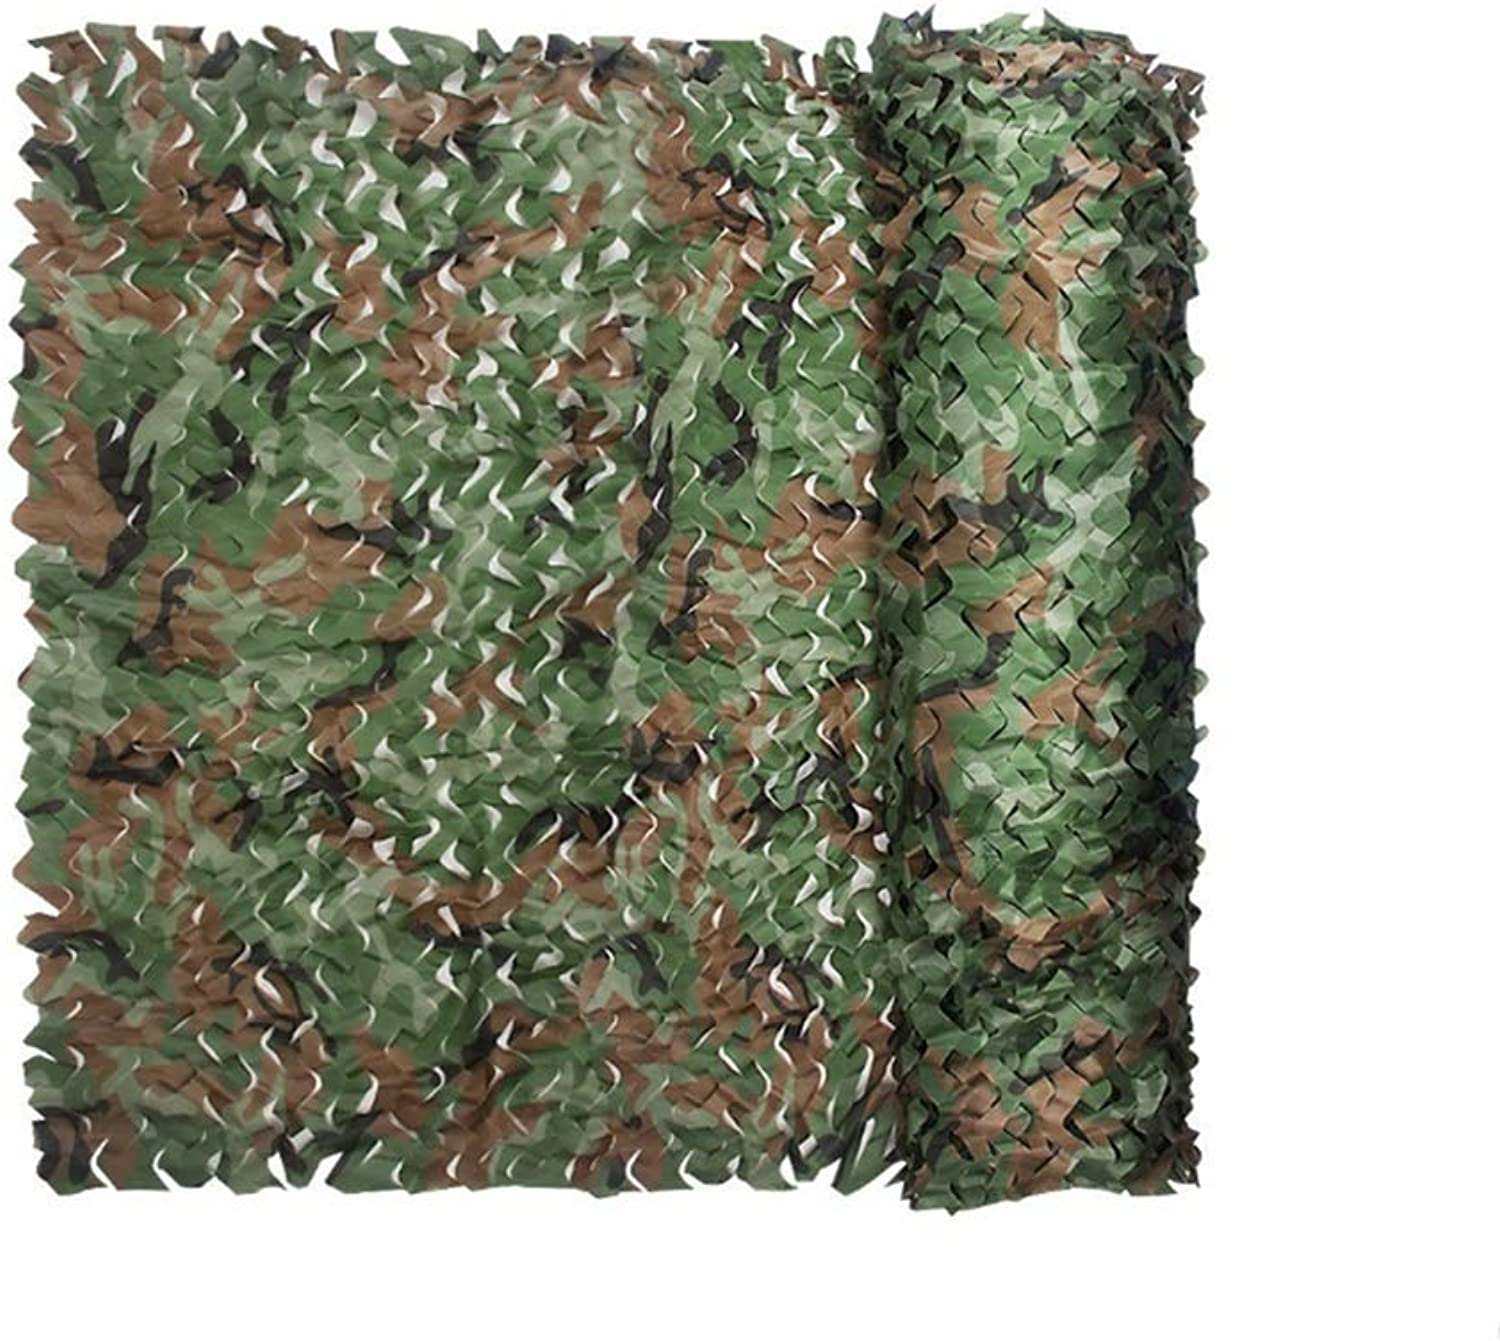 Caixia Camouflage nets, Jungle Camouflage Nets  Outdoor Satellite AntiAircraft Shoot Large Flowers Green Pine Needle Sunscreen Net Camouflage Net (color   2x3M)